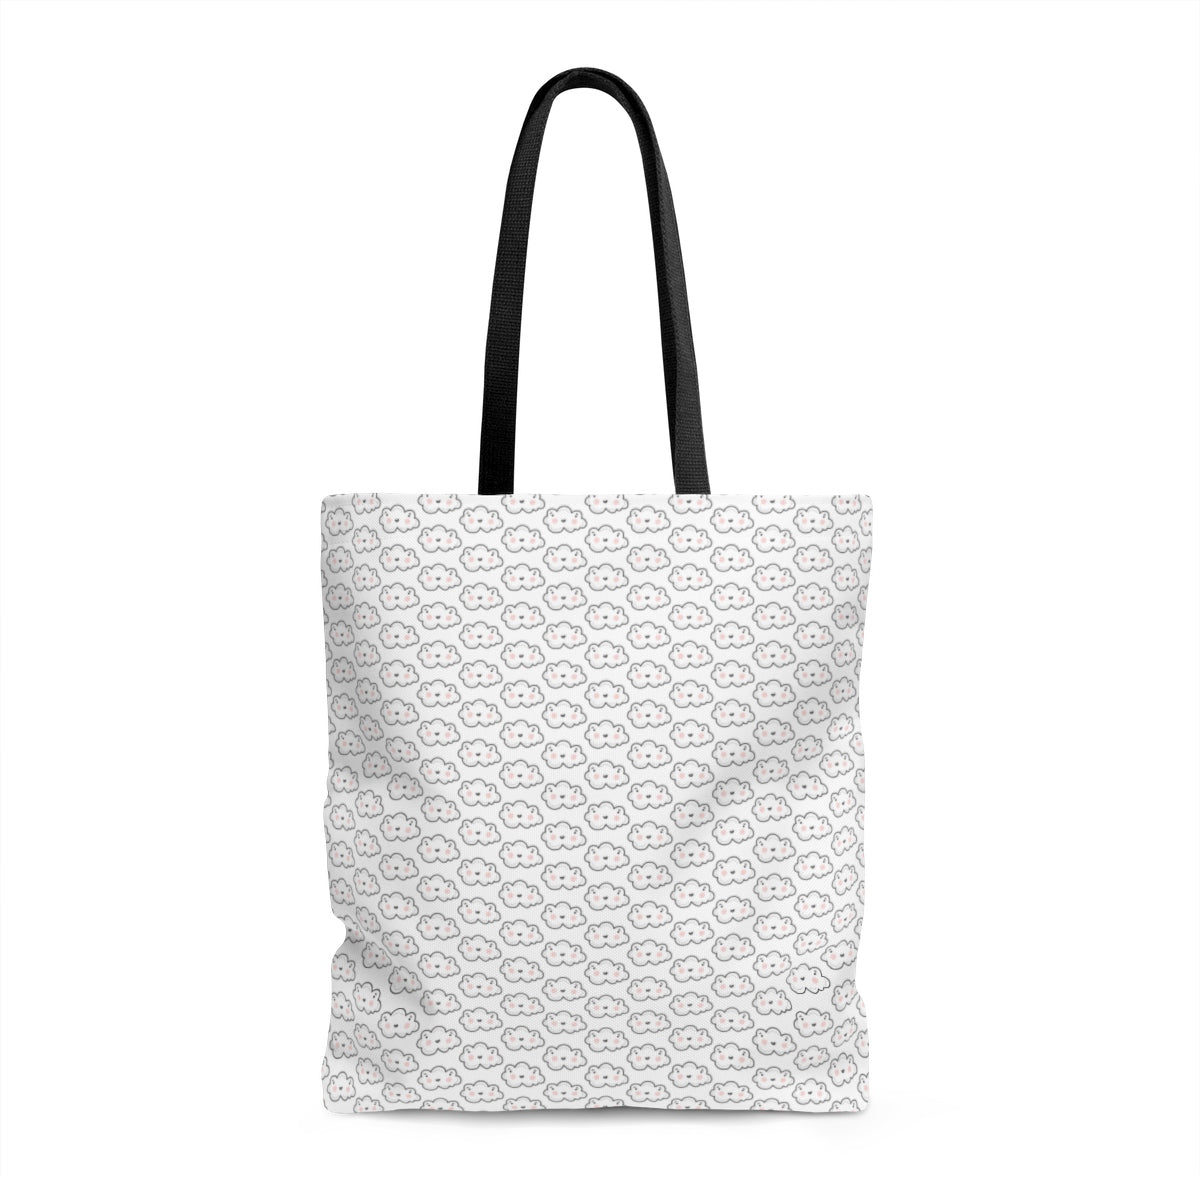 Cloudy – Tote Bag (AOP)